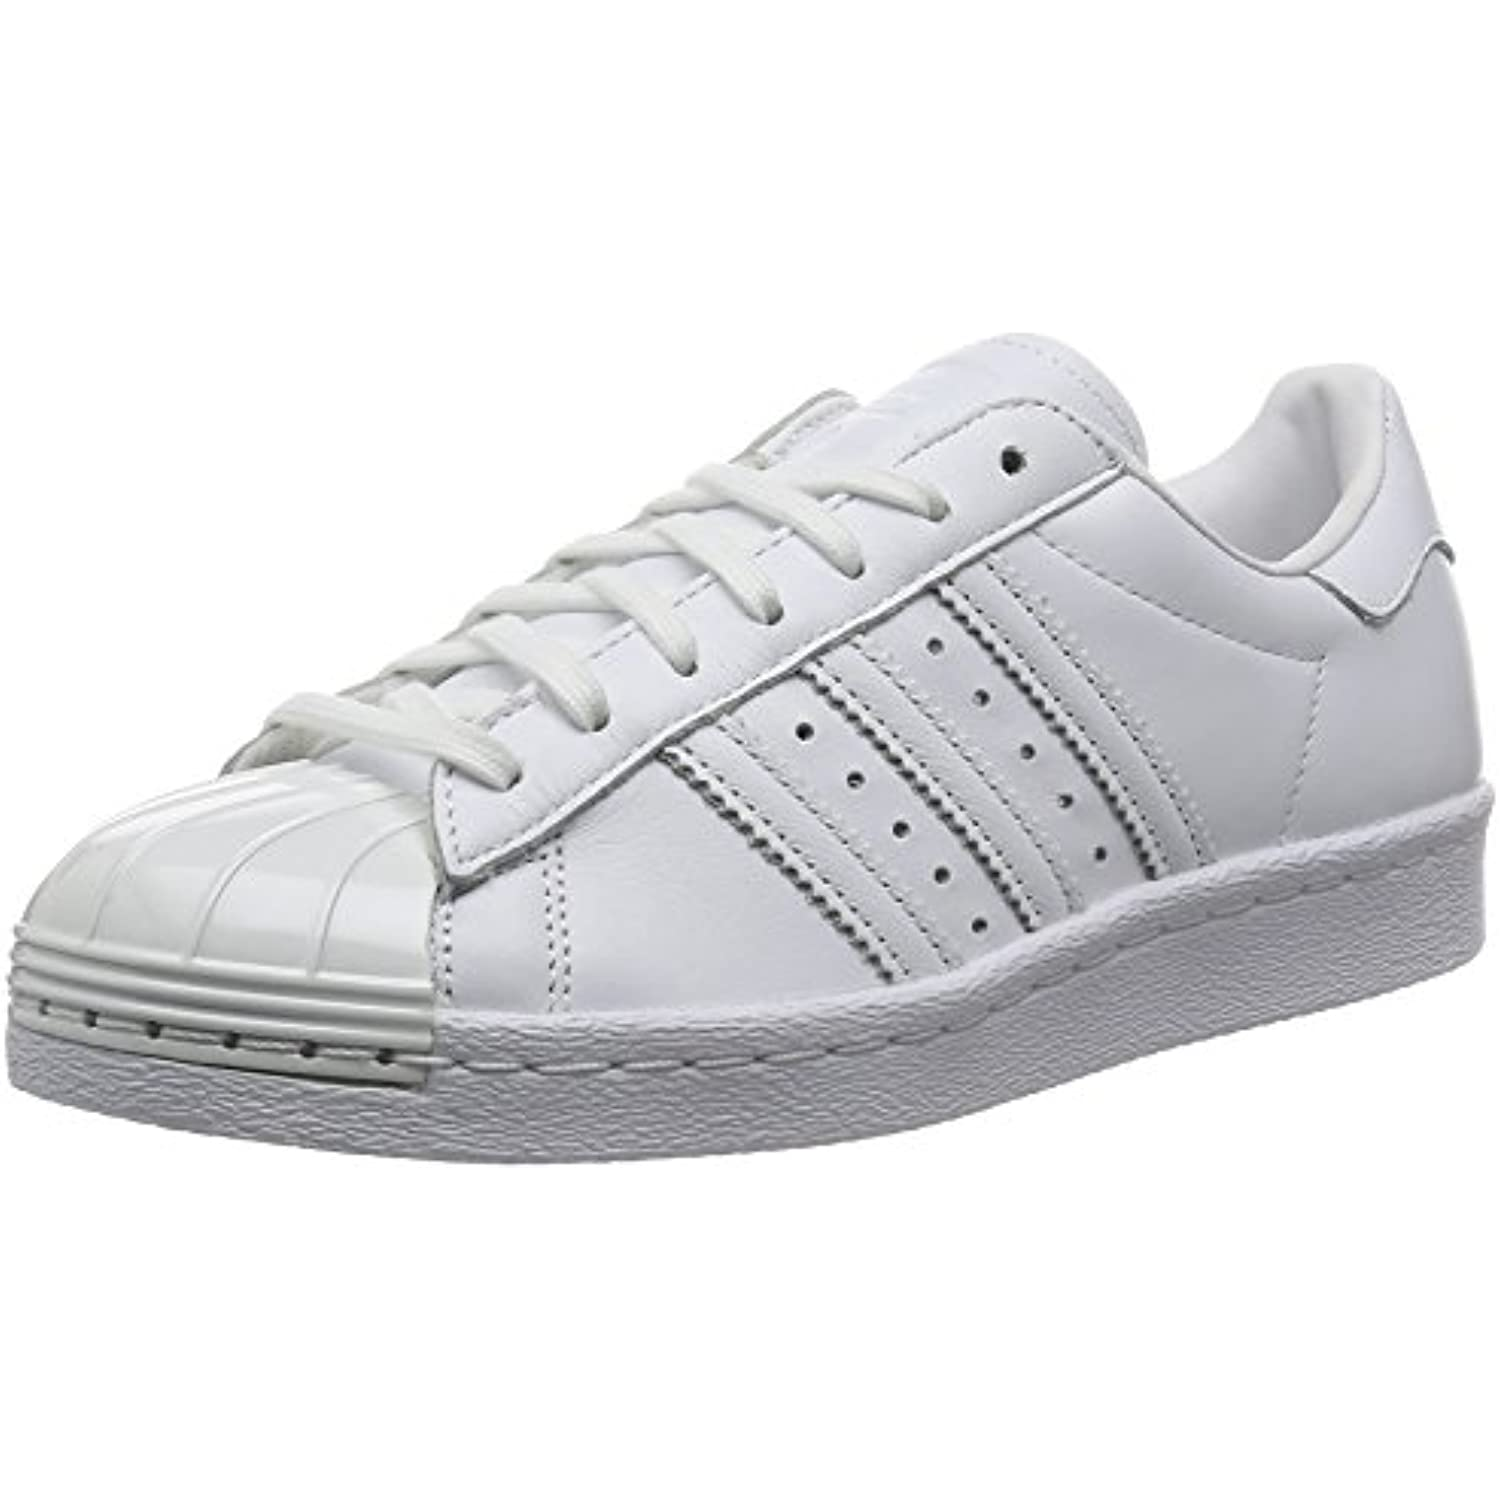 adidas Superstar 80's Metal Toe Toe Toe Femme Baskets Mode Blanc - B01C4CB8I4 - d866c0